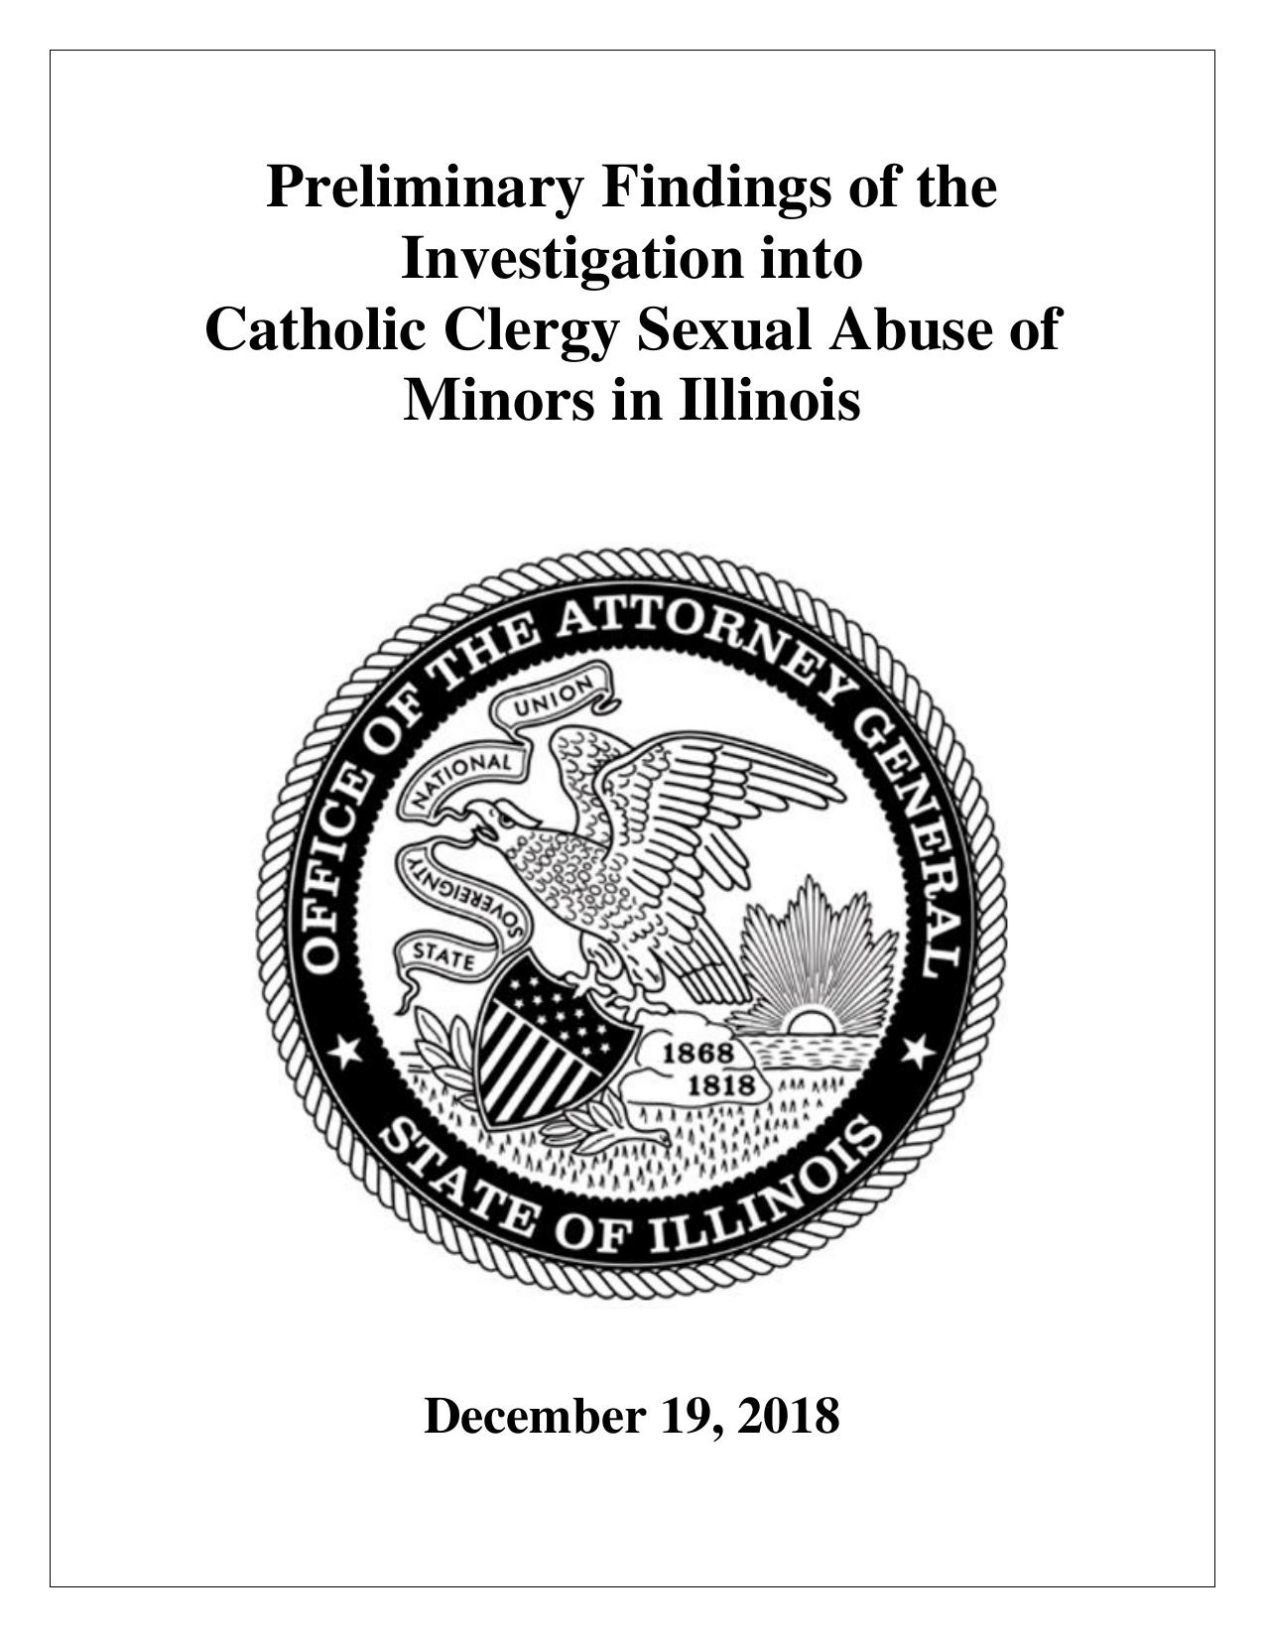 Illinois AG investigation finds 500 more clergy accused of